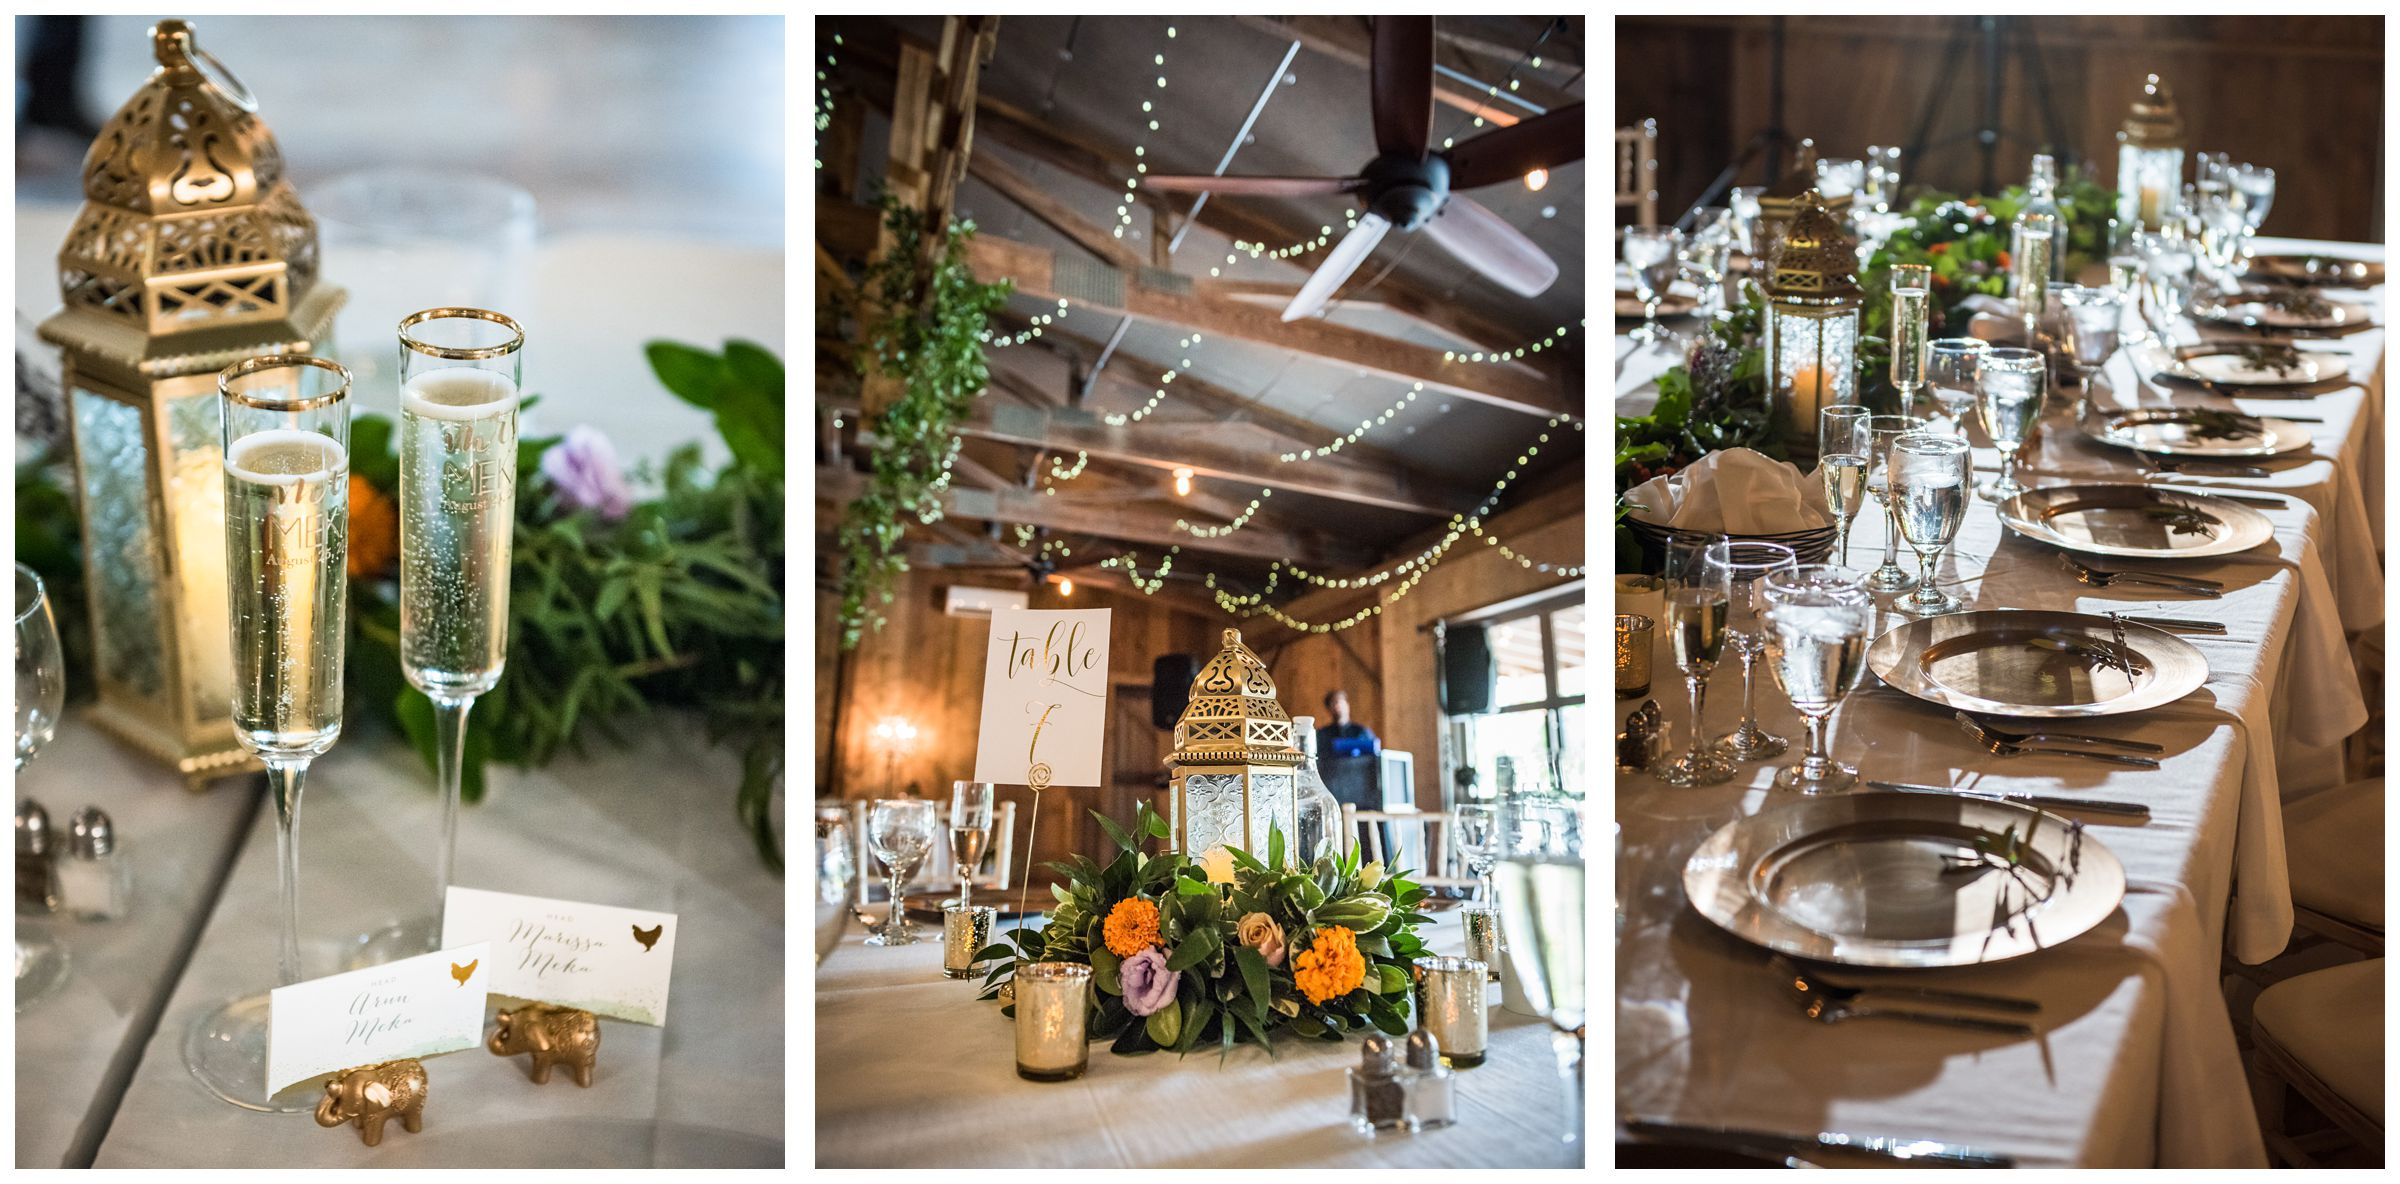 Jorgensen Farms Historic Barn wedding reception with greenery and gold decor including Indian elephants